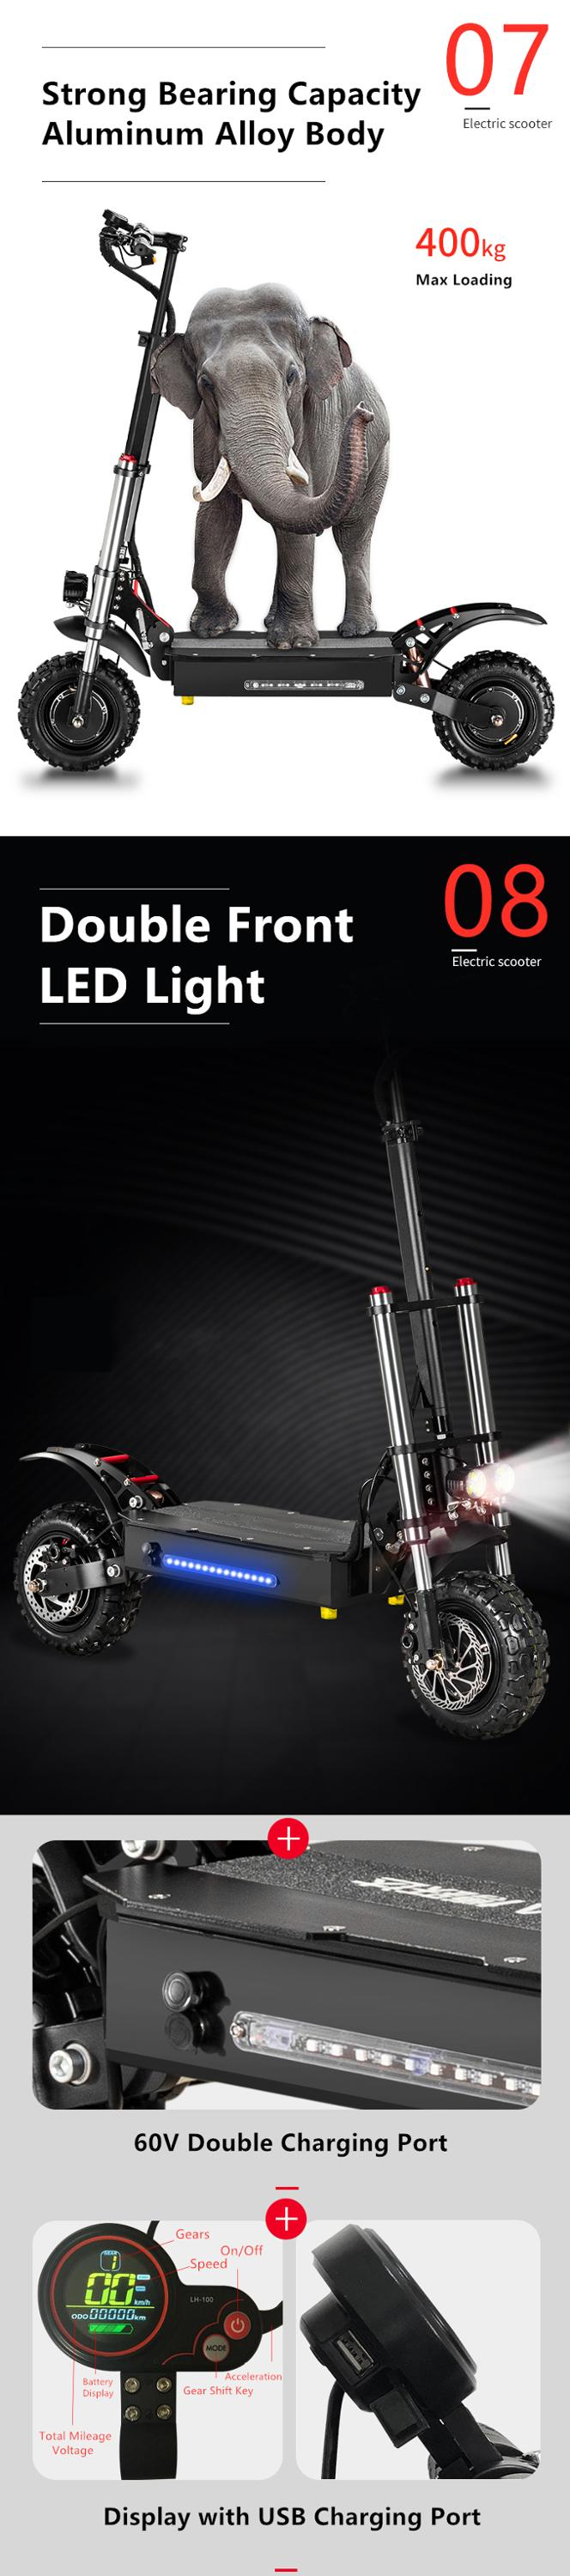 Electric Scooter_01 (9).jpg